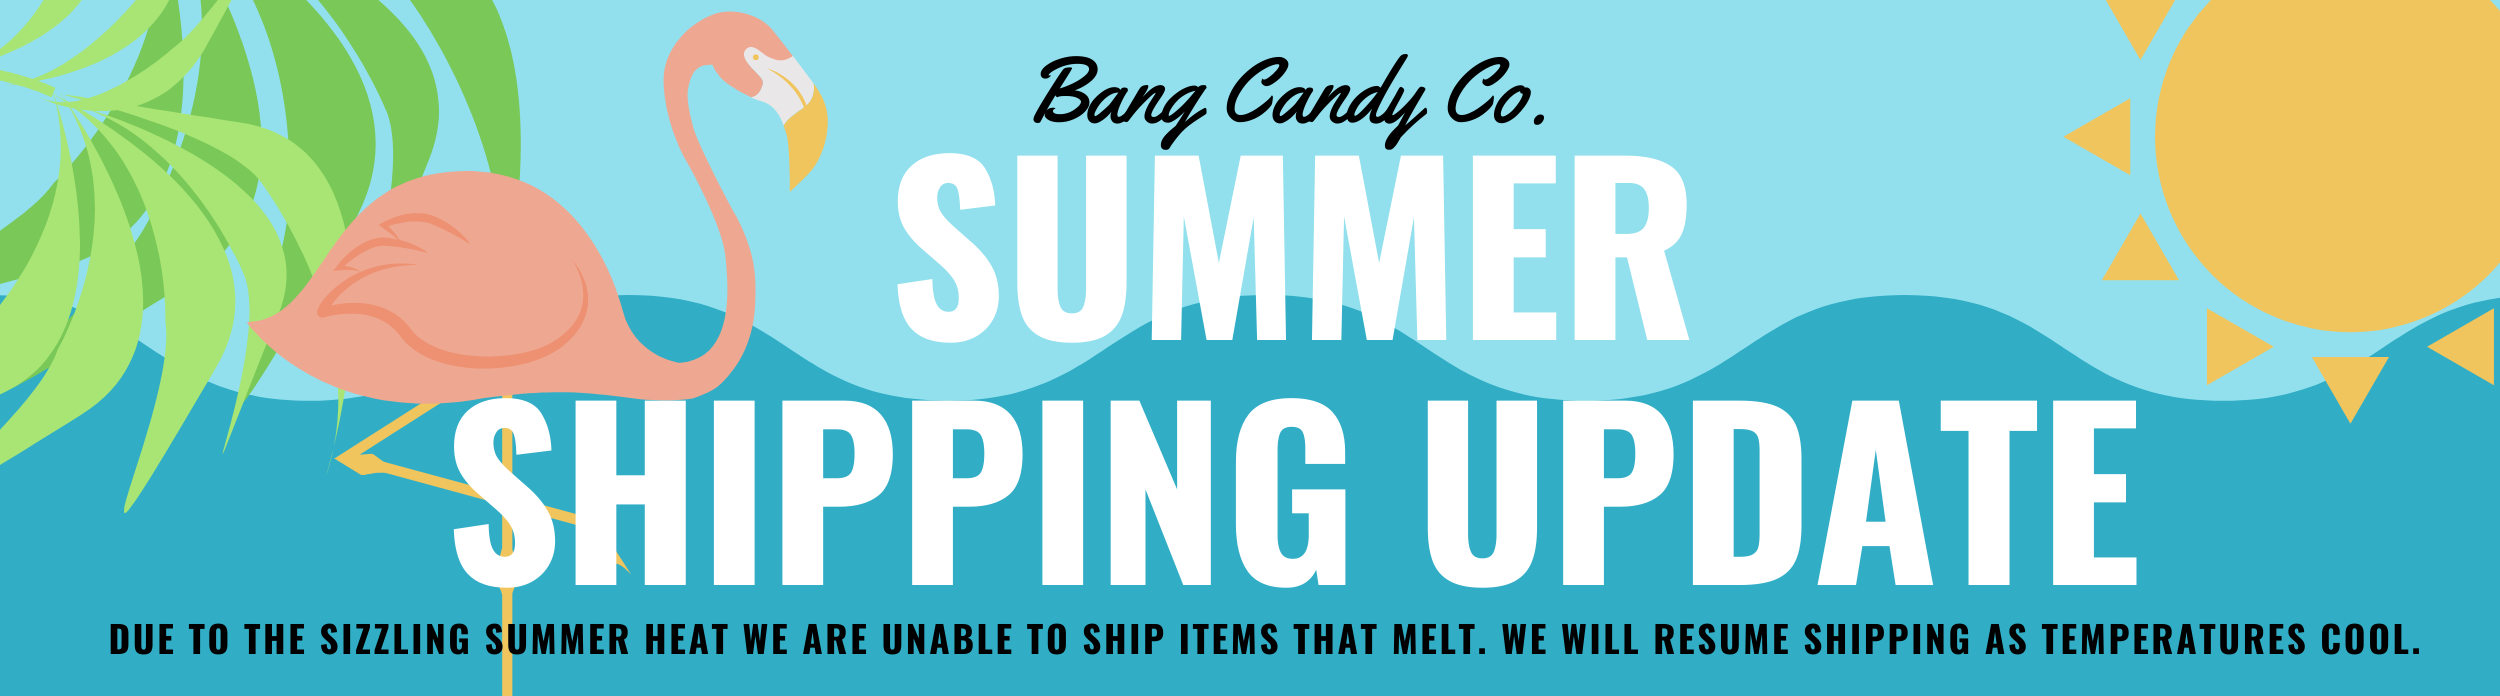 Summershippingbanner.png